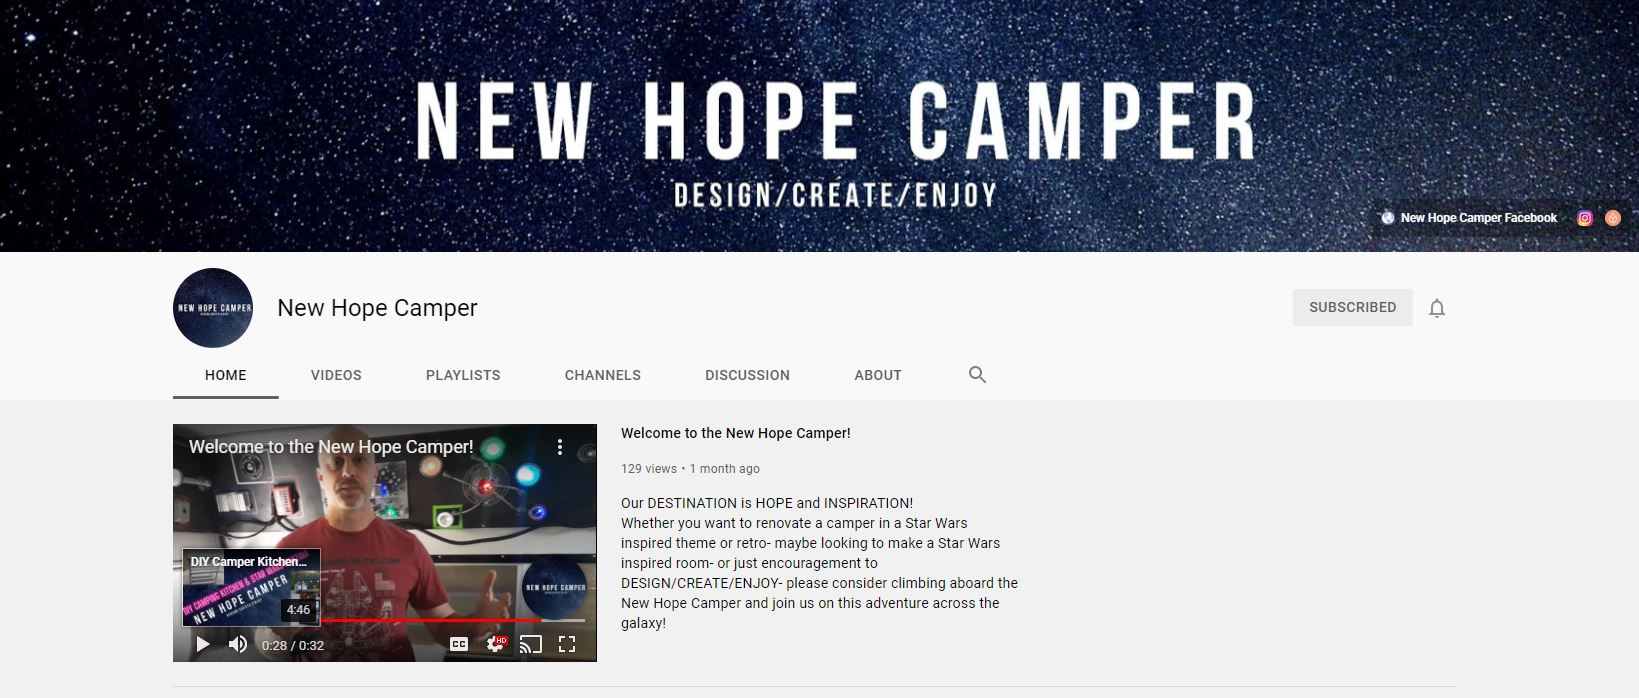 You Have to See This Amazing Star Wars Themed RV Reno All Things with Purpose Sarah Lemp 11